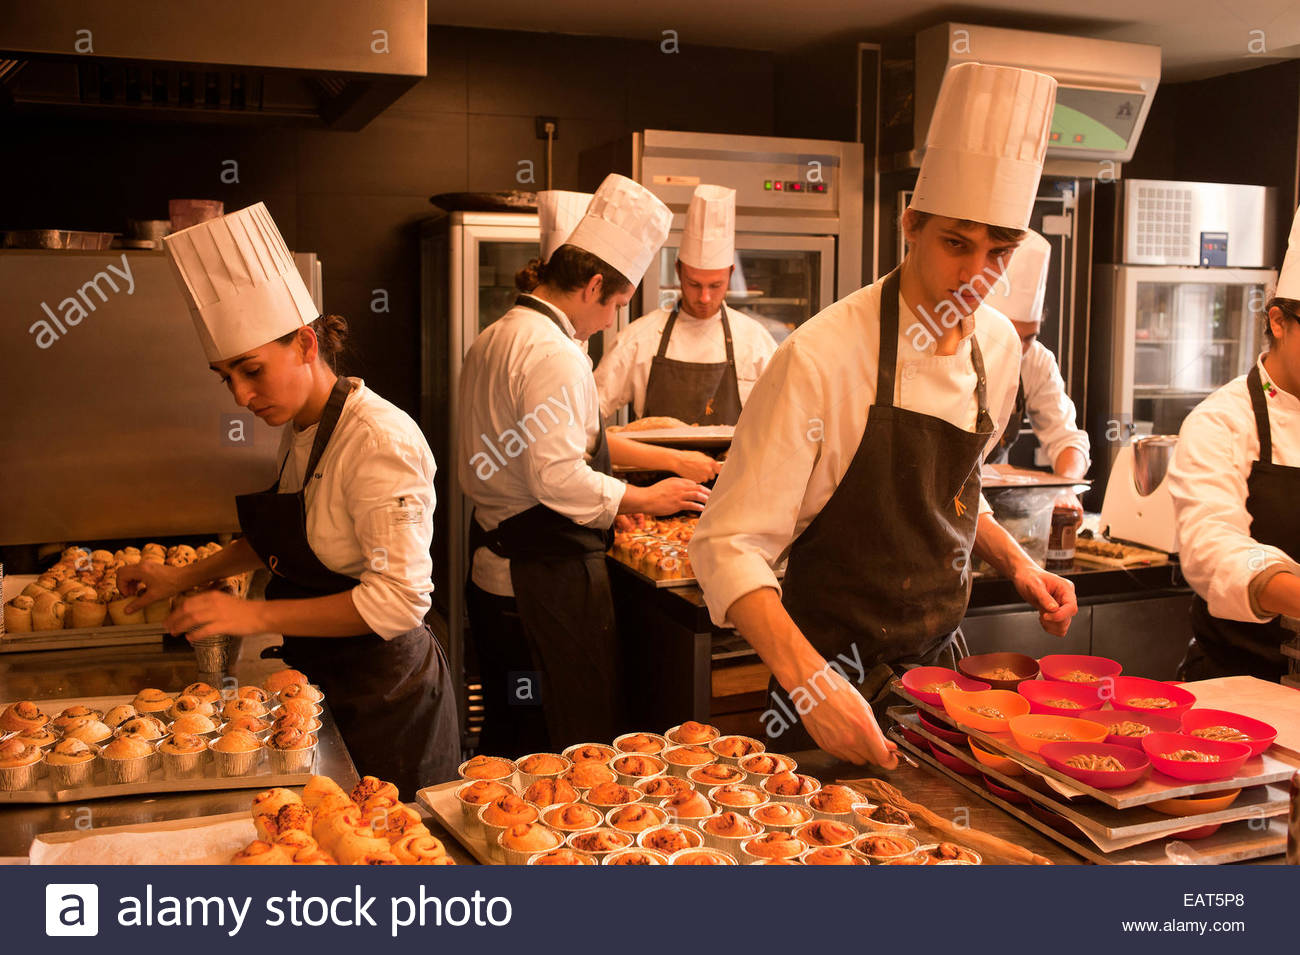 Chefs in the kitchen of the restaurant 'El Celler de Can Roca'. - Stock Image